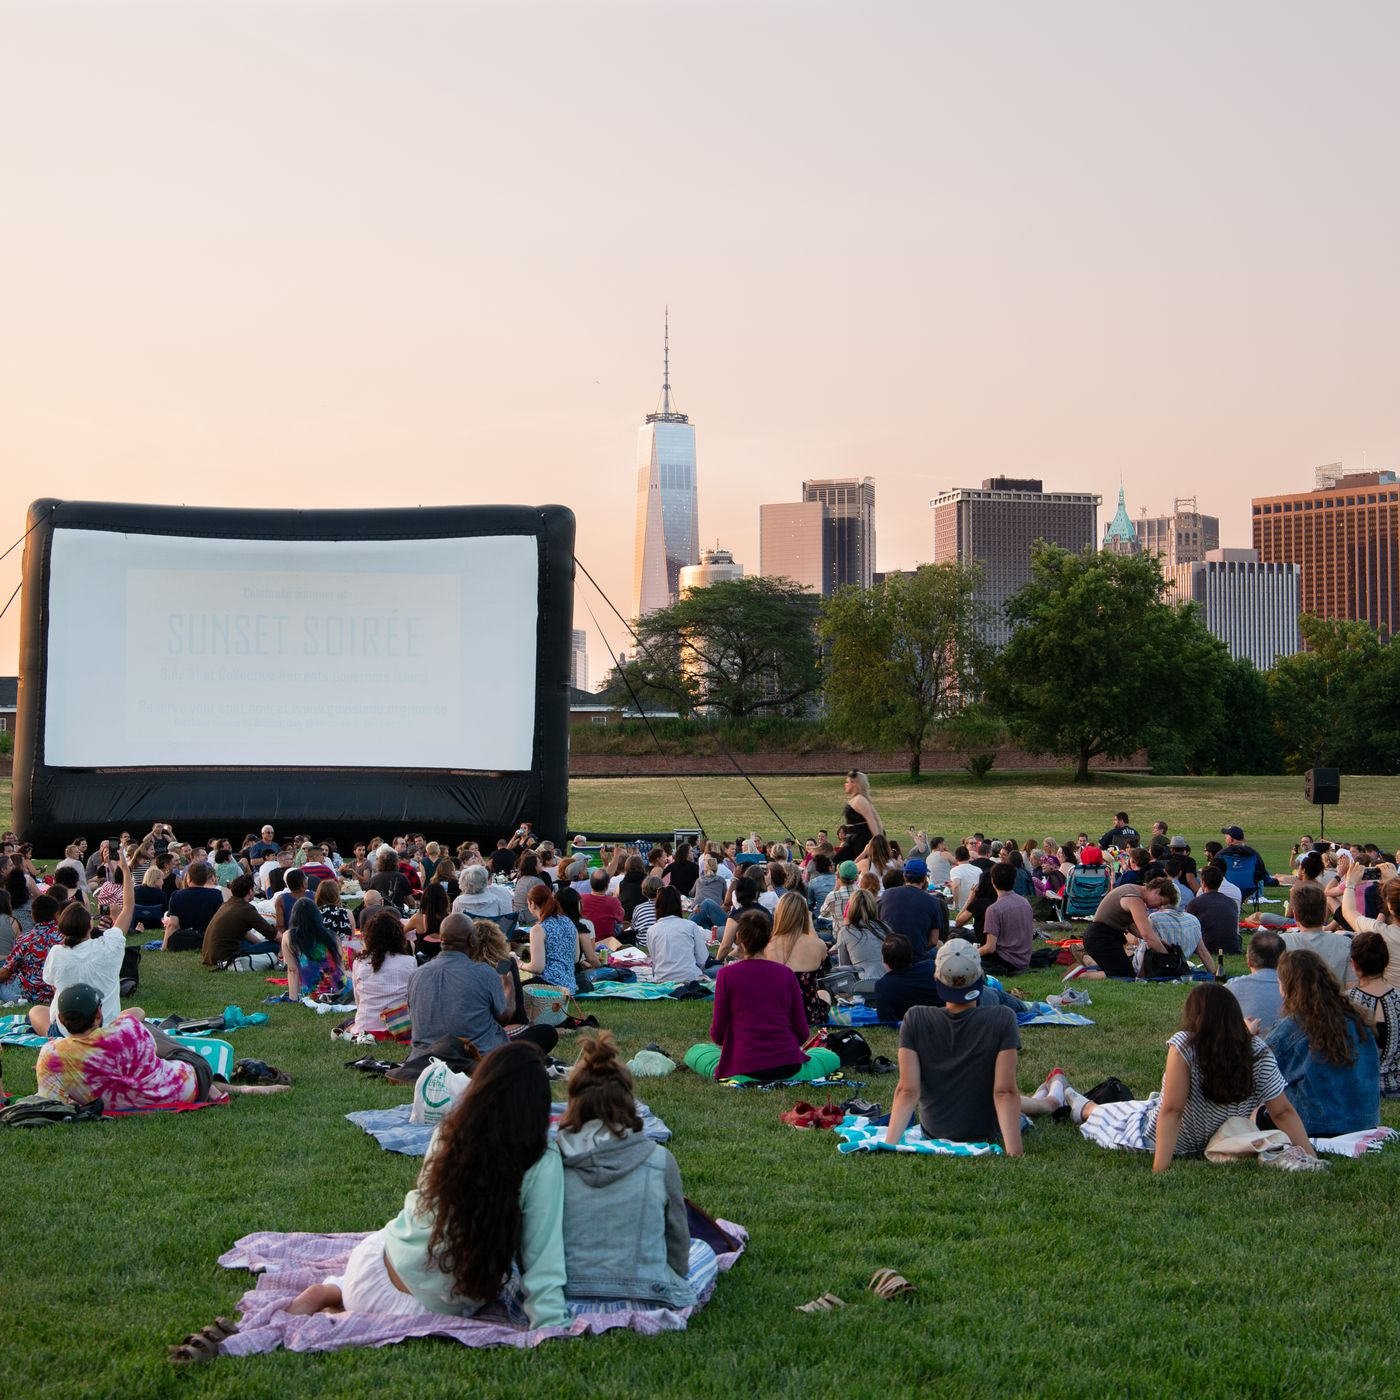 New York's best outdoor movie screenings this summer - Curbed NY